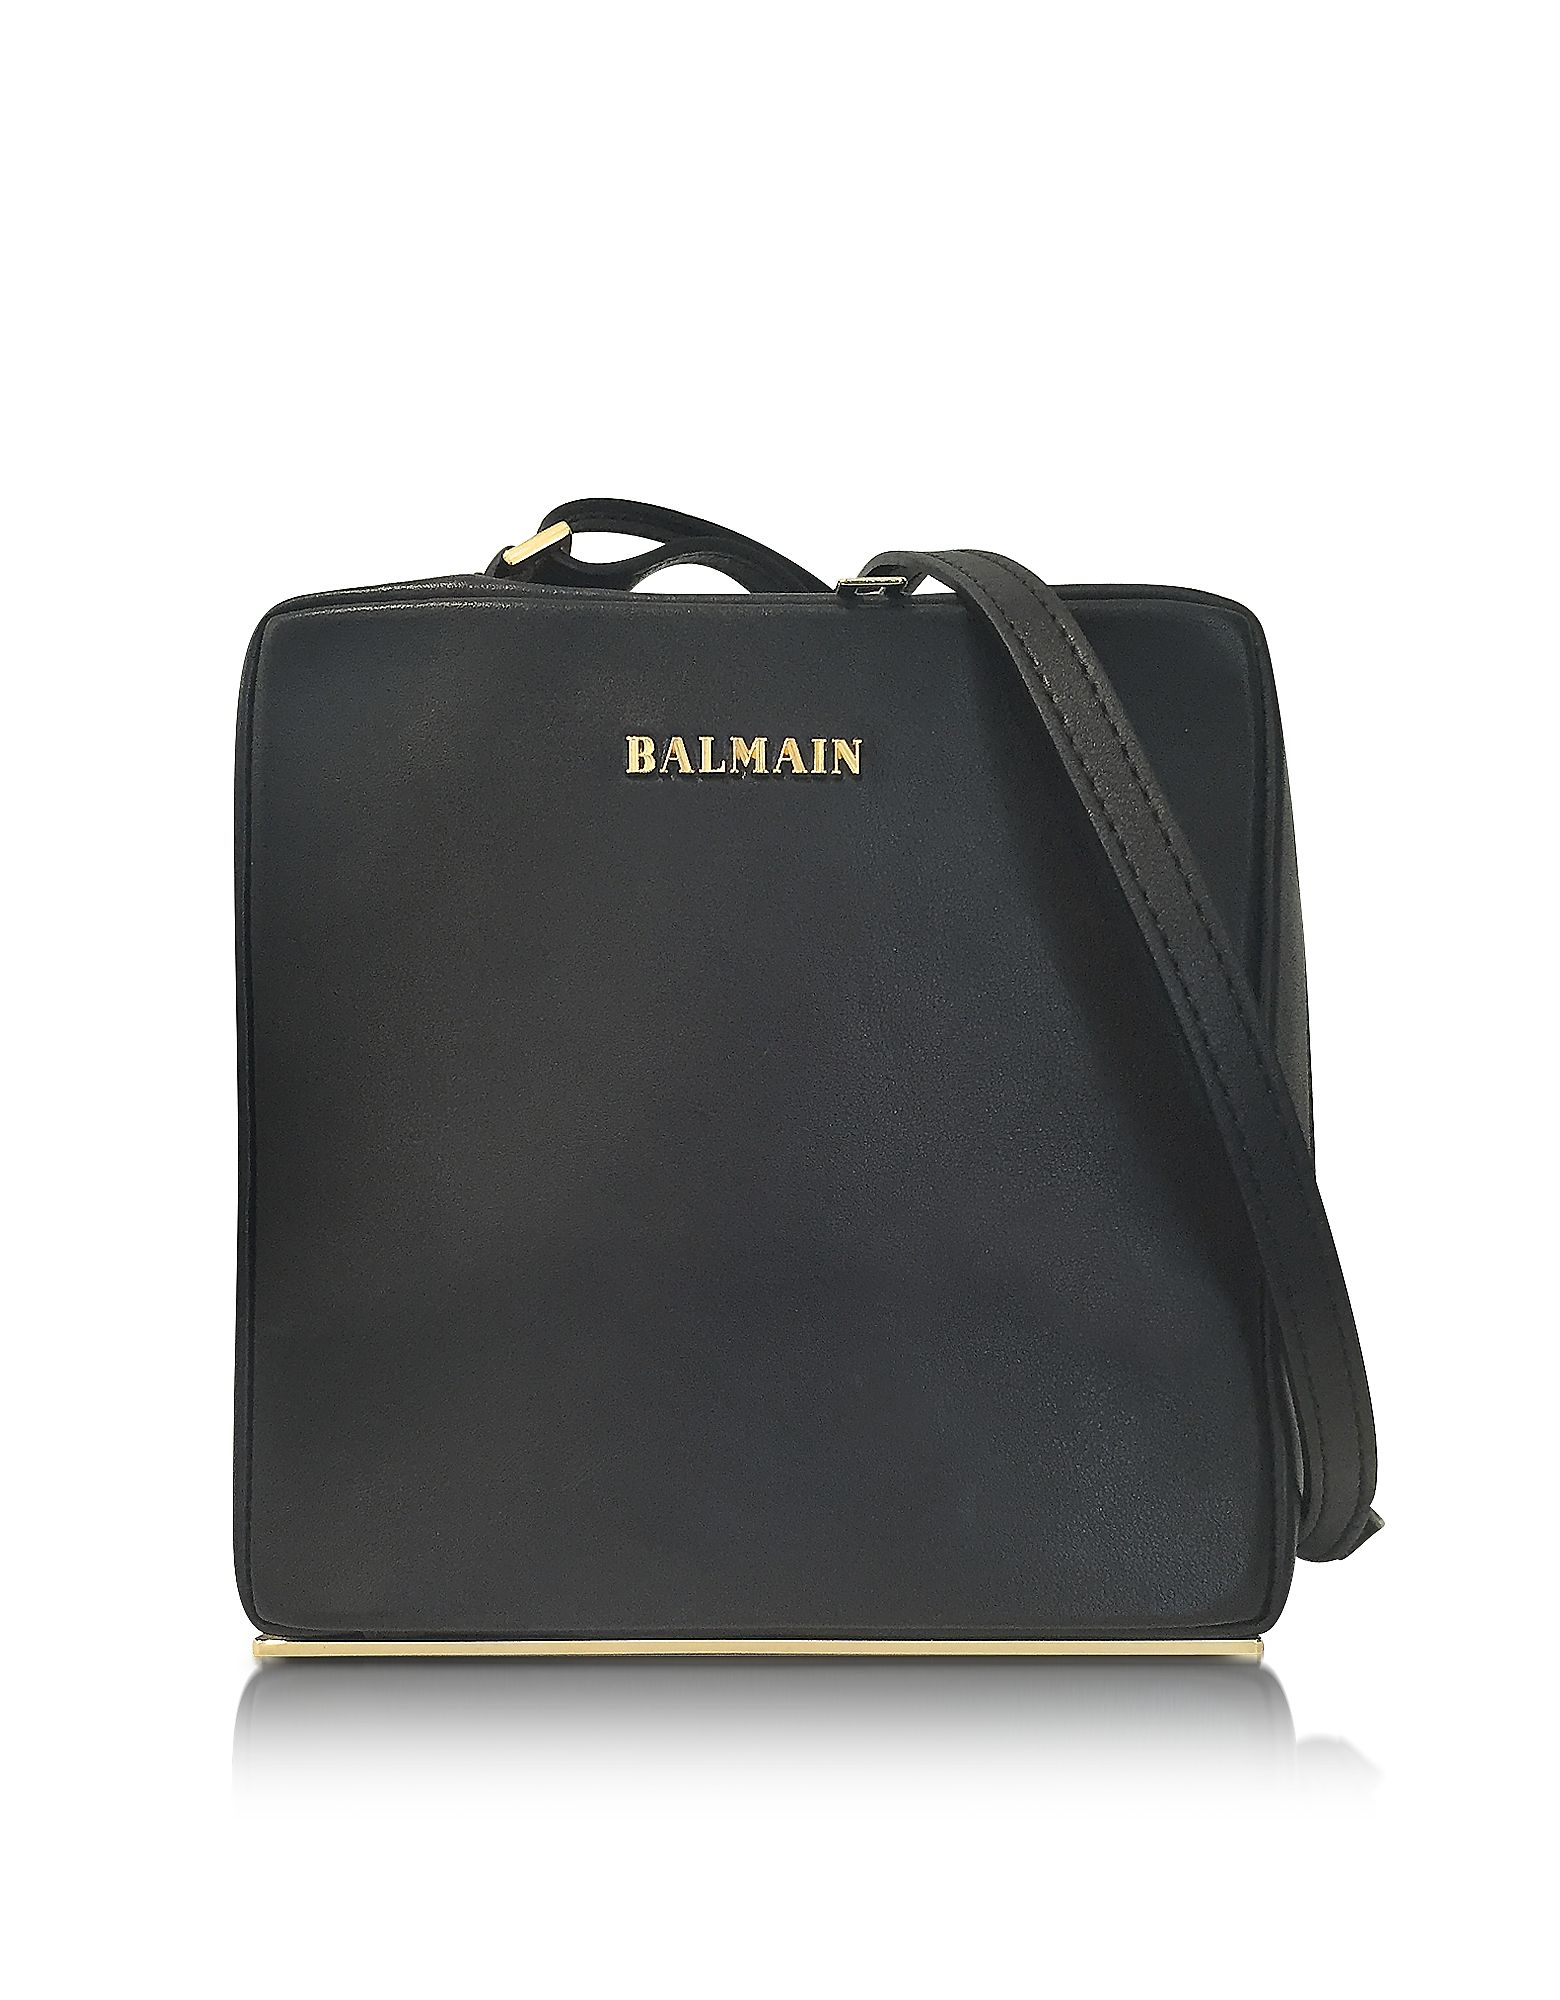 Pablito Black Leather Shoulder Bag crafted in calfskin, has a contemporary structure and a sensual look with a city chic vibe. Featuring zip closure, shoulder strap, signature detail on front, bottom base and gold tone hardware. Genuine Balmain.